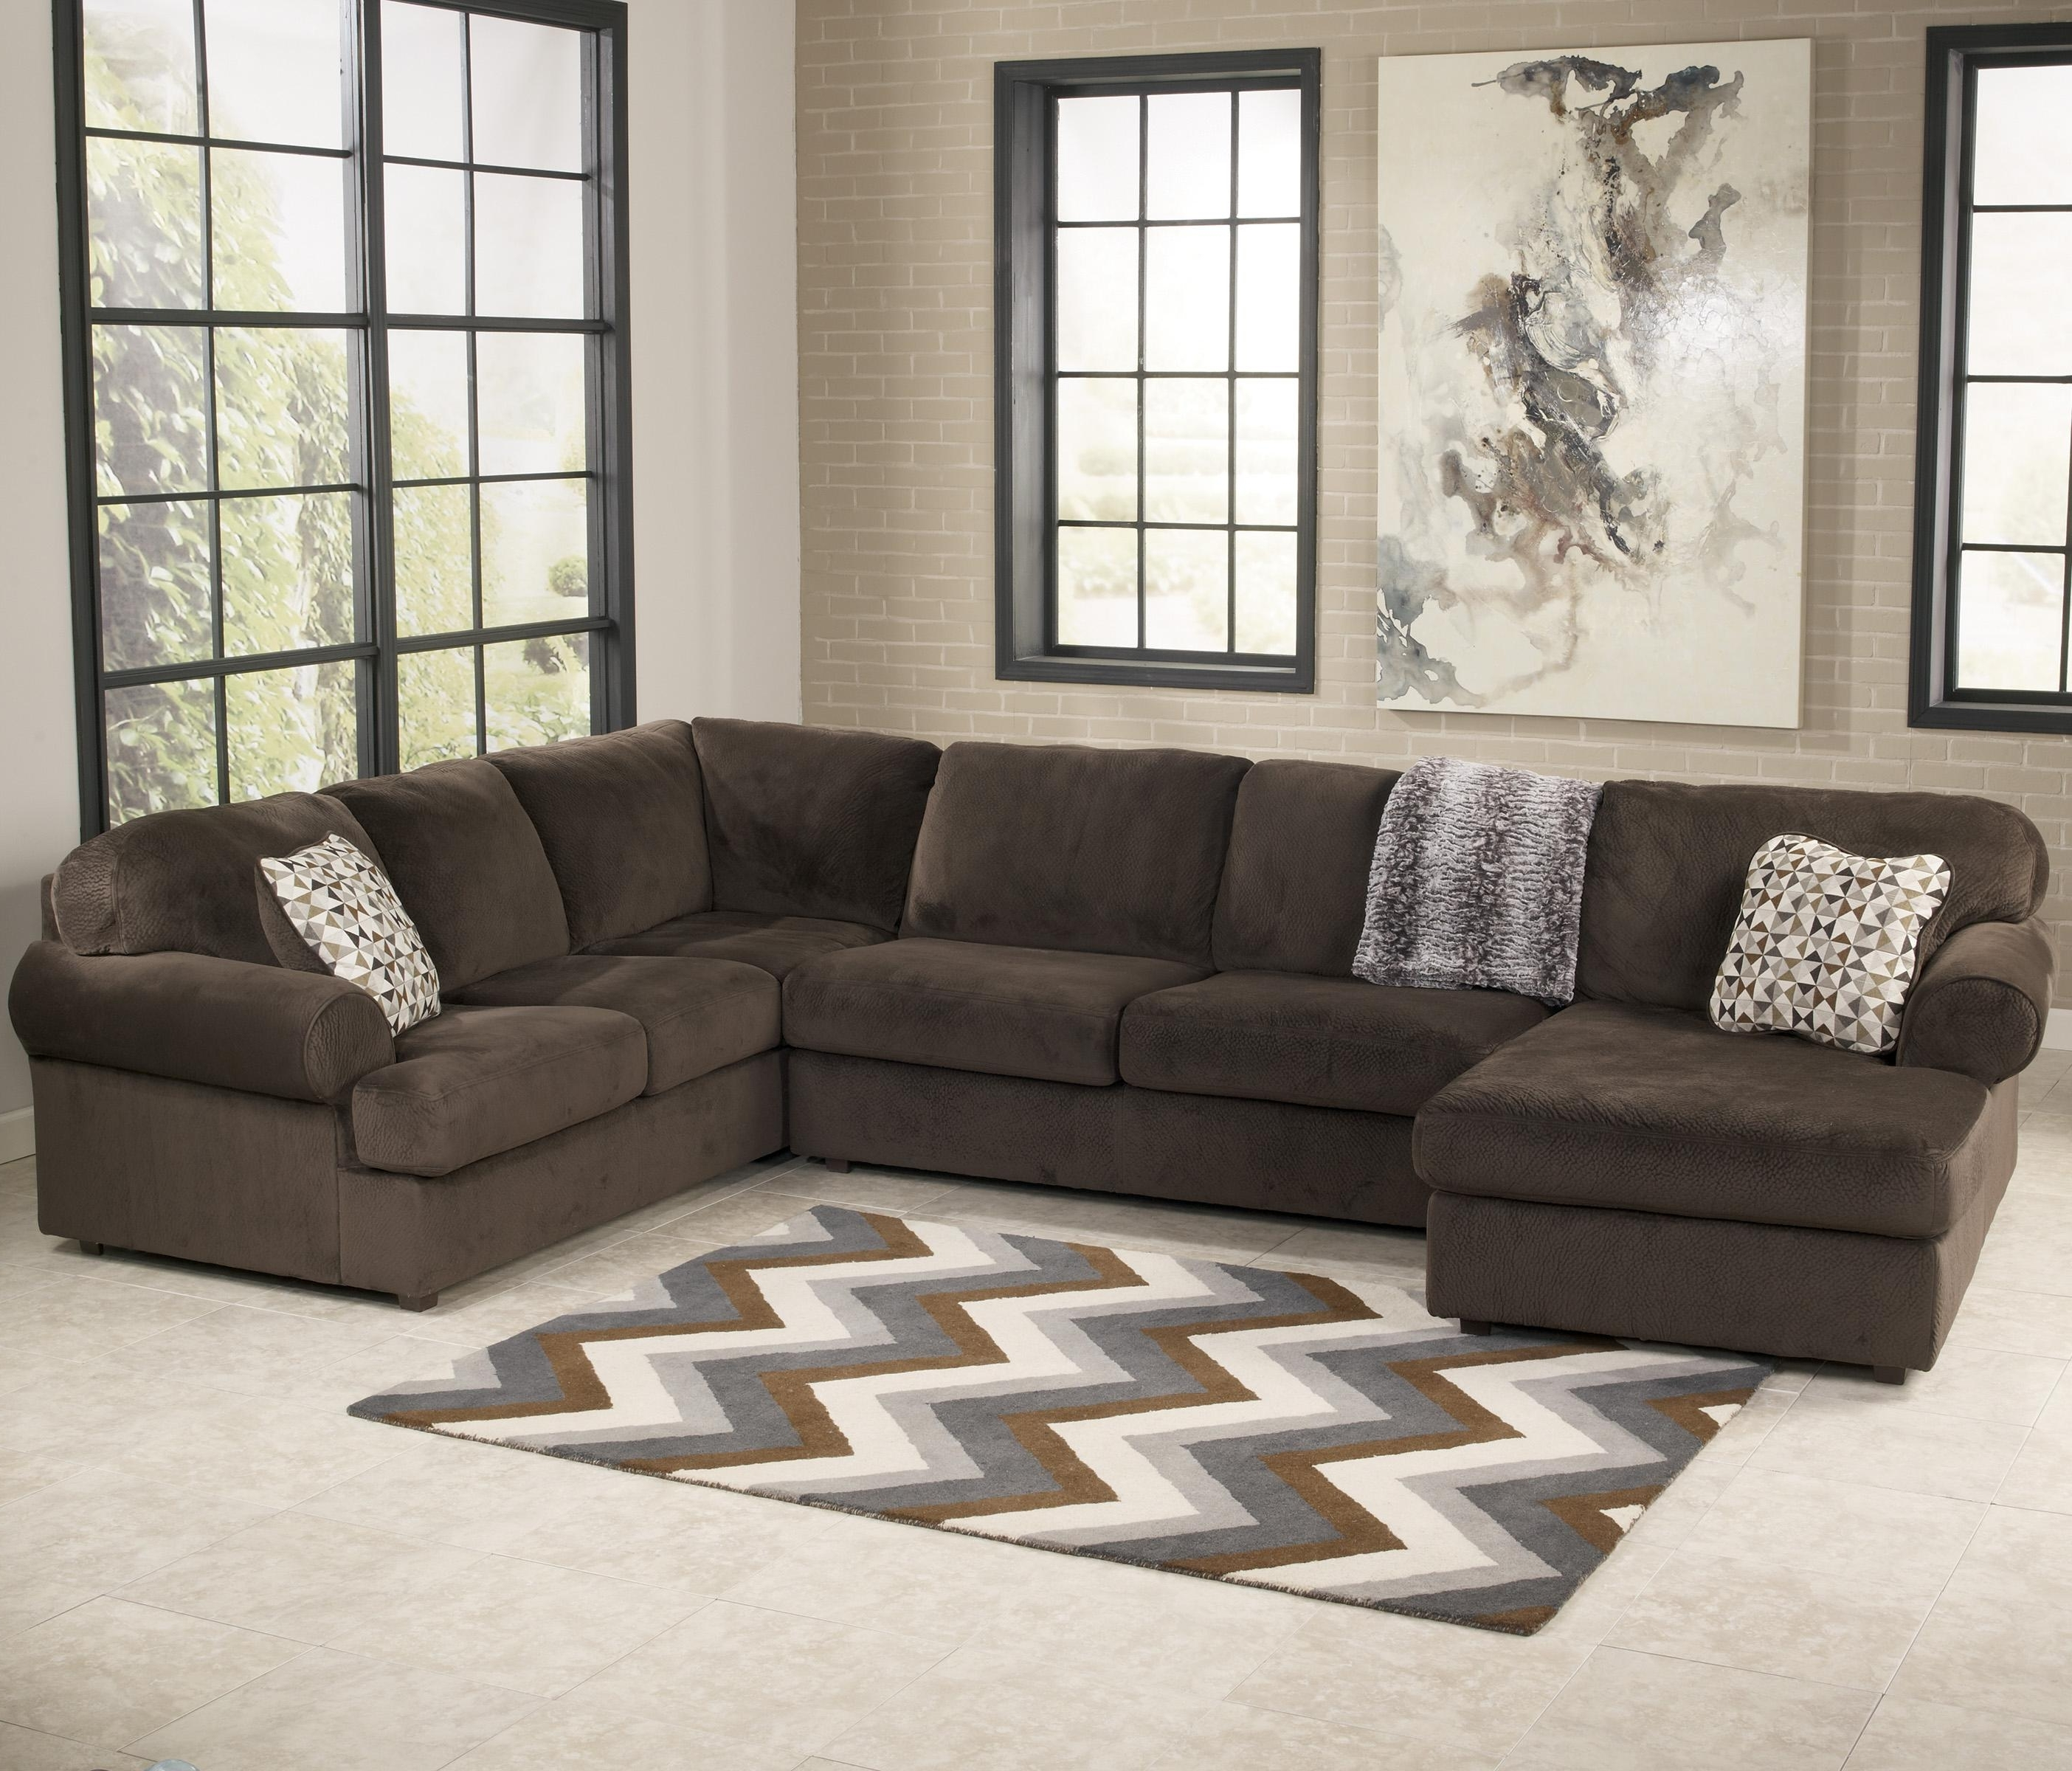 Preferred Sectional Sofa (View 15 of 20)